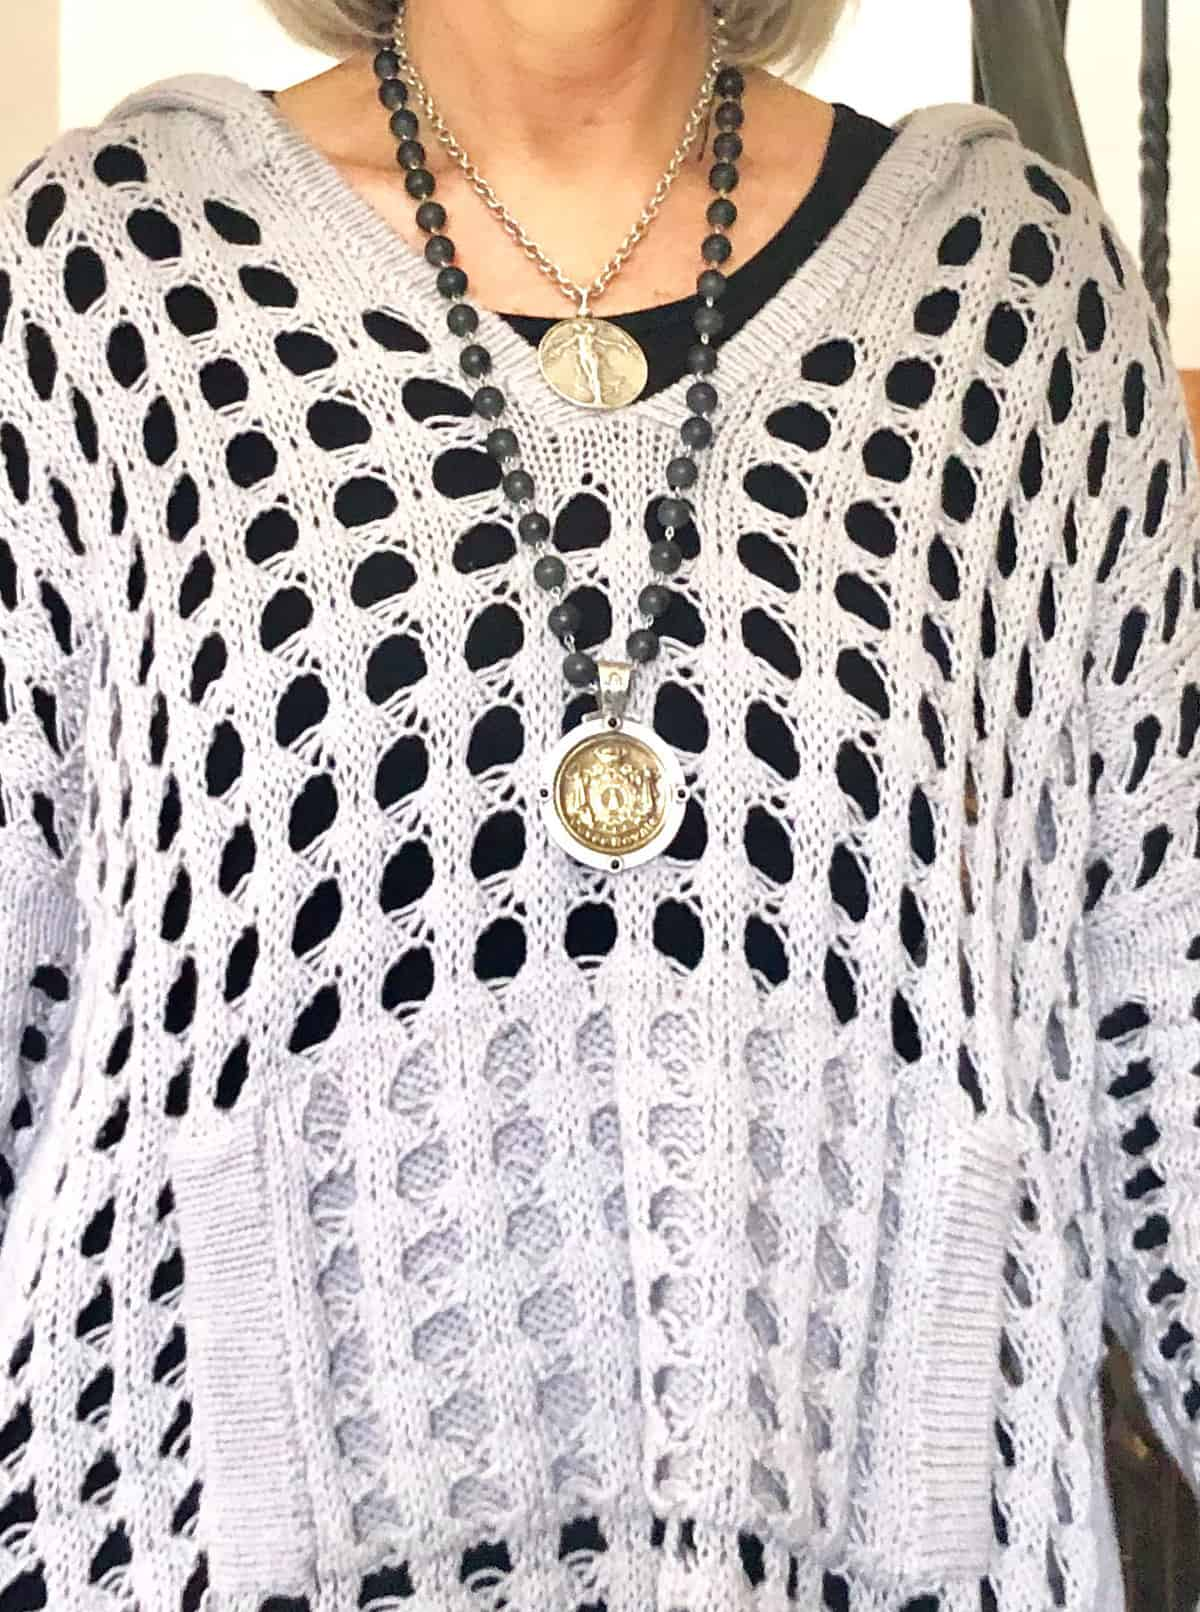 french kande necklaces and planet crochet hoodie